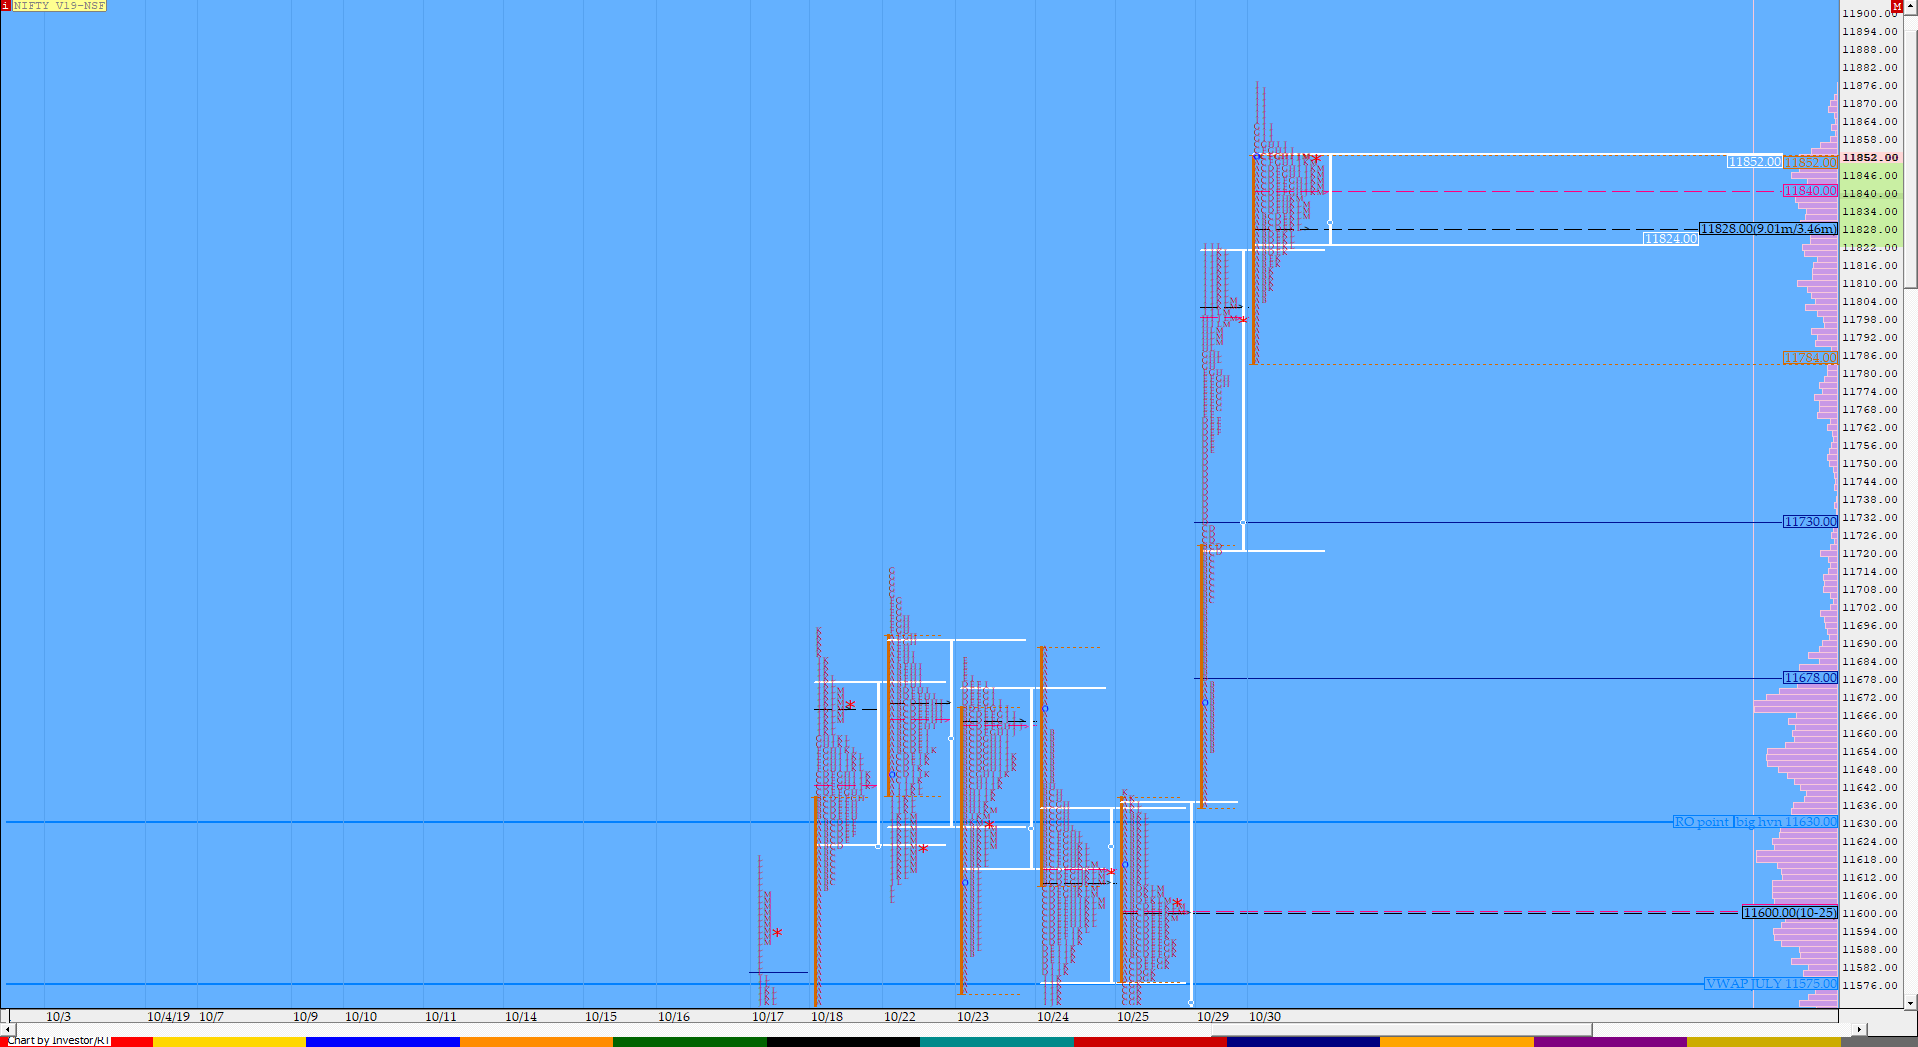 Market Profile Analysis dated 30th October 2